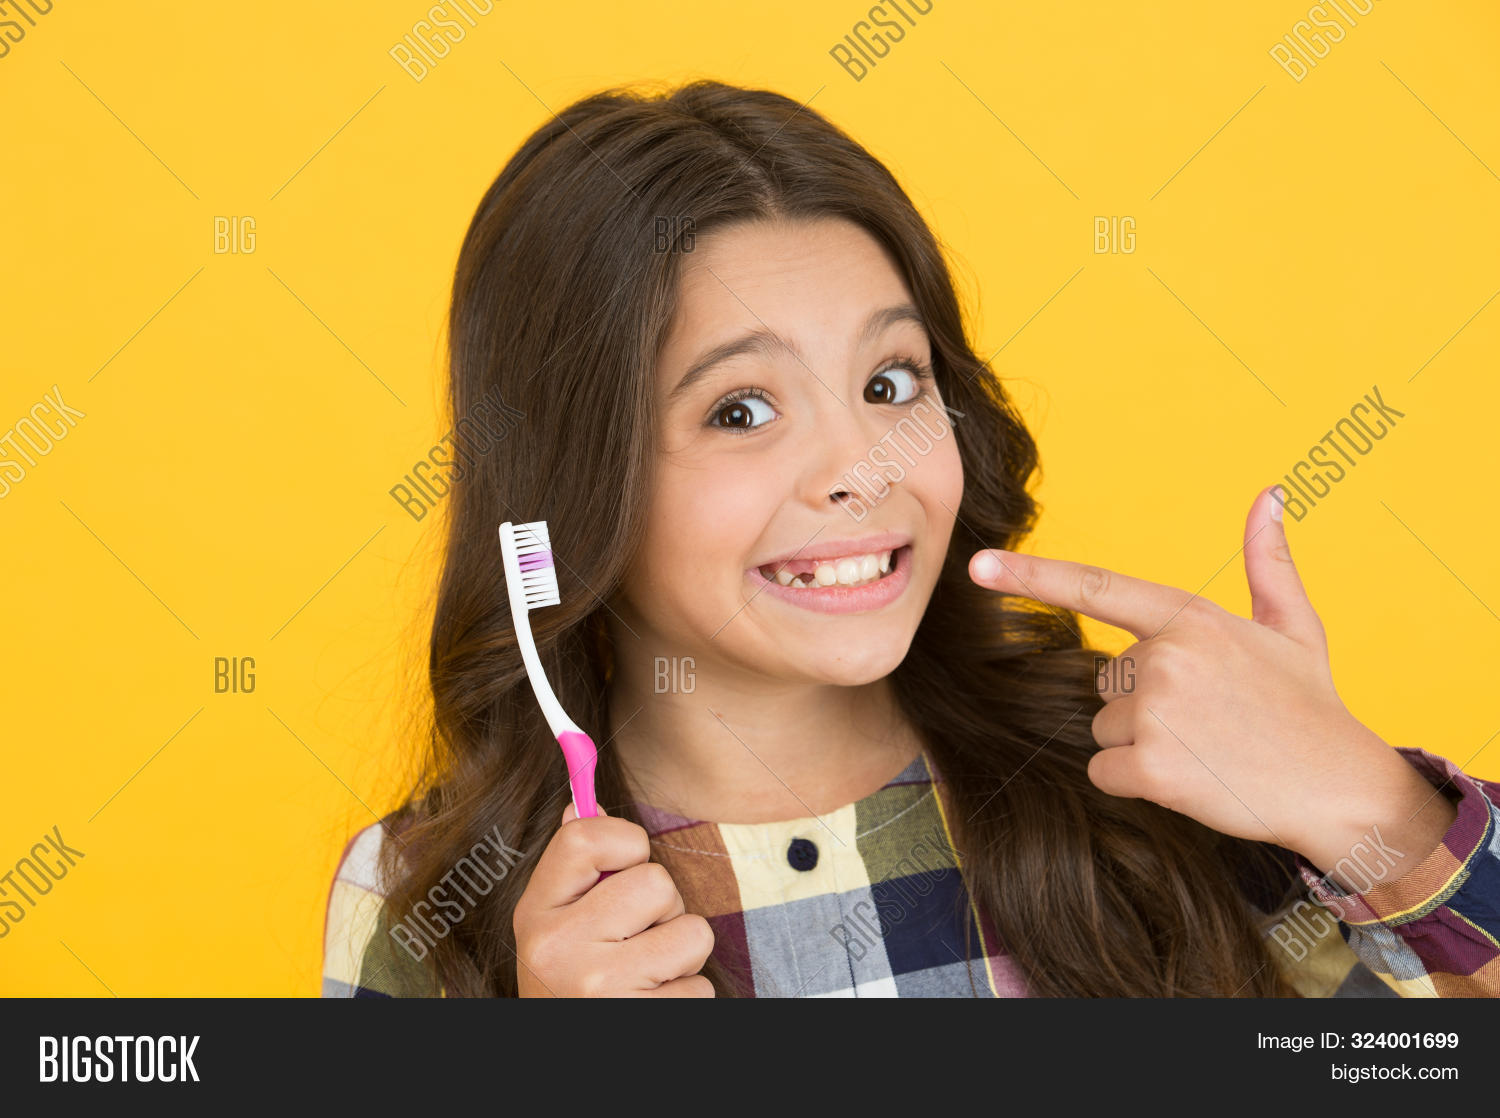 adorable,baby,background,beauty,care,charming,child,childhood,clean,concept,cute,dentistry,excited,face,fairy,fall,feel,girl,grow,happiness,have,healthy,her,hygiene,kid,little,loss,make,most,mouth,one,out,permanent,school,showing,smile,stomatology,teeth,tooth,toothbrush,toothy,way,wiggle,without,yellow